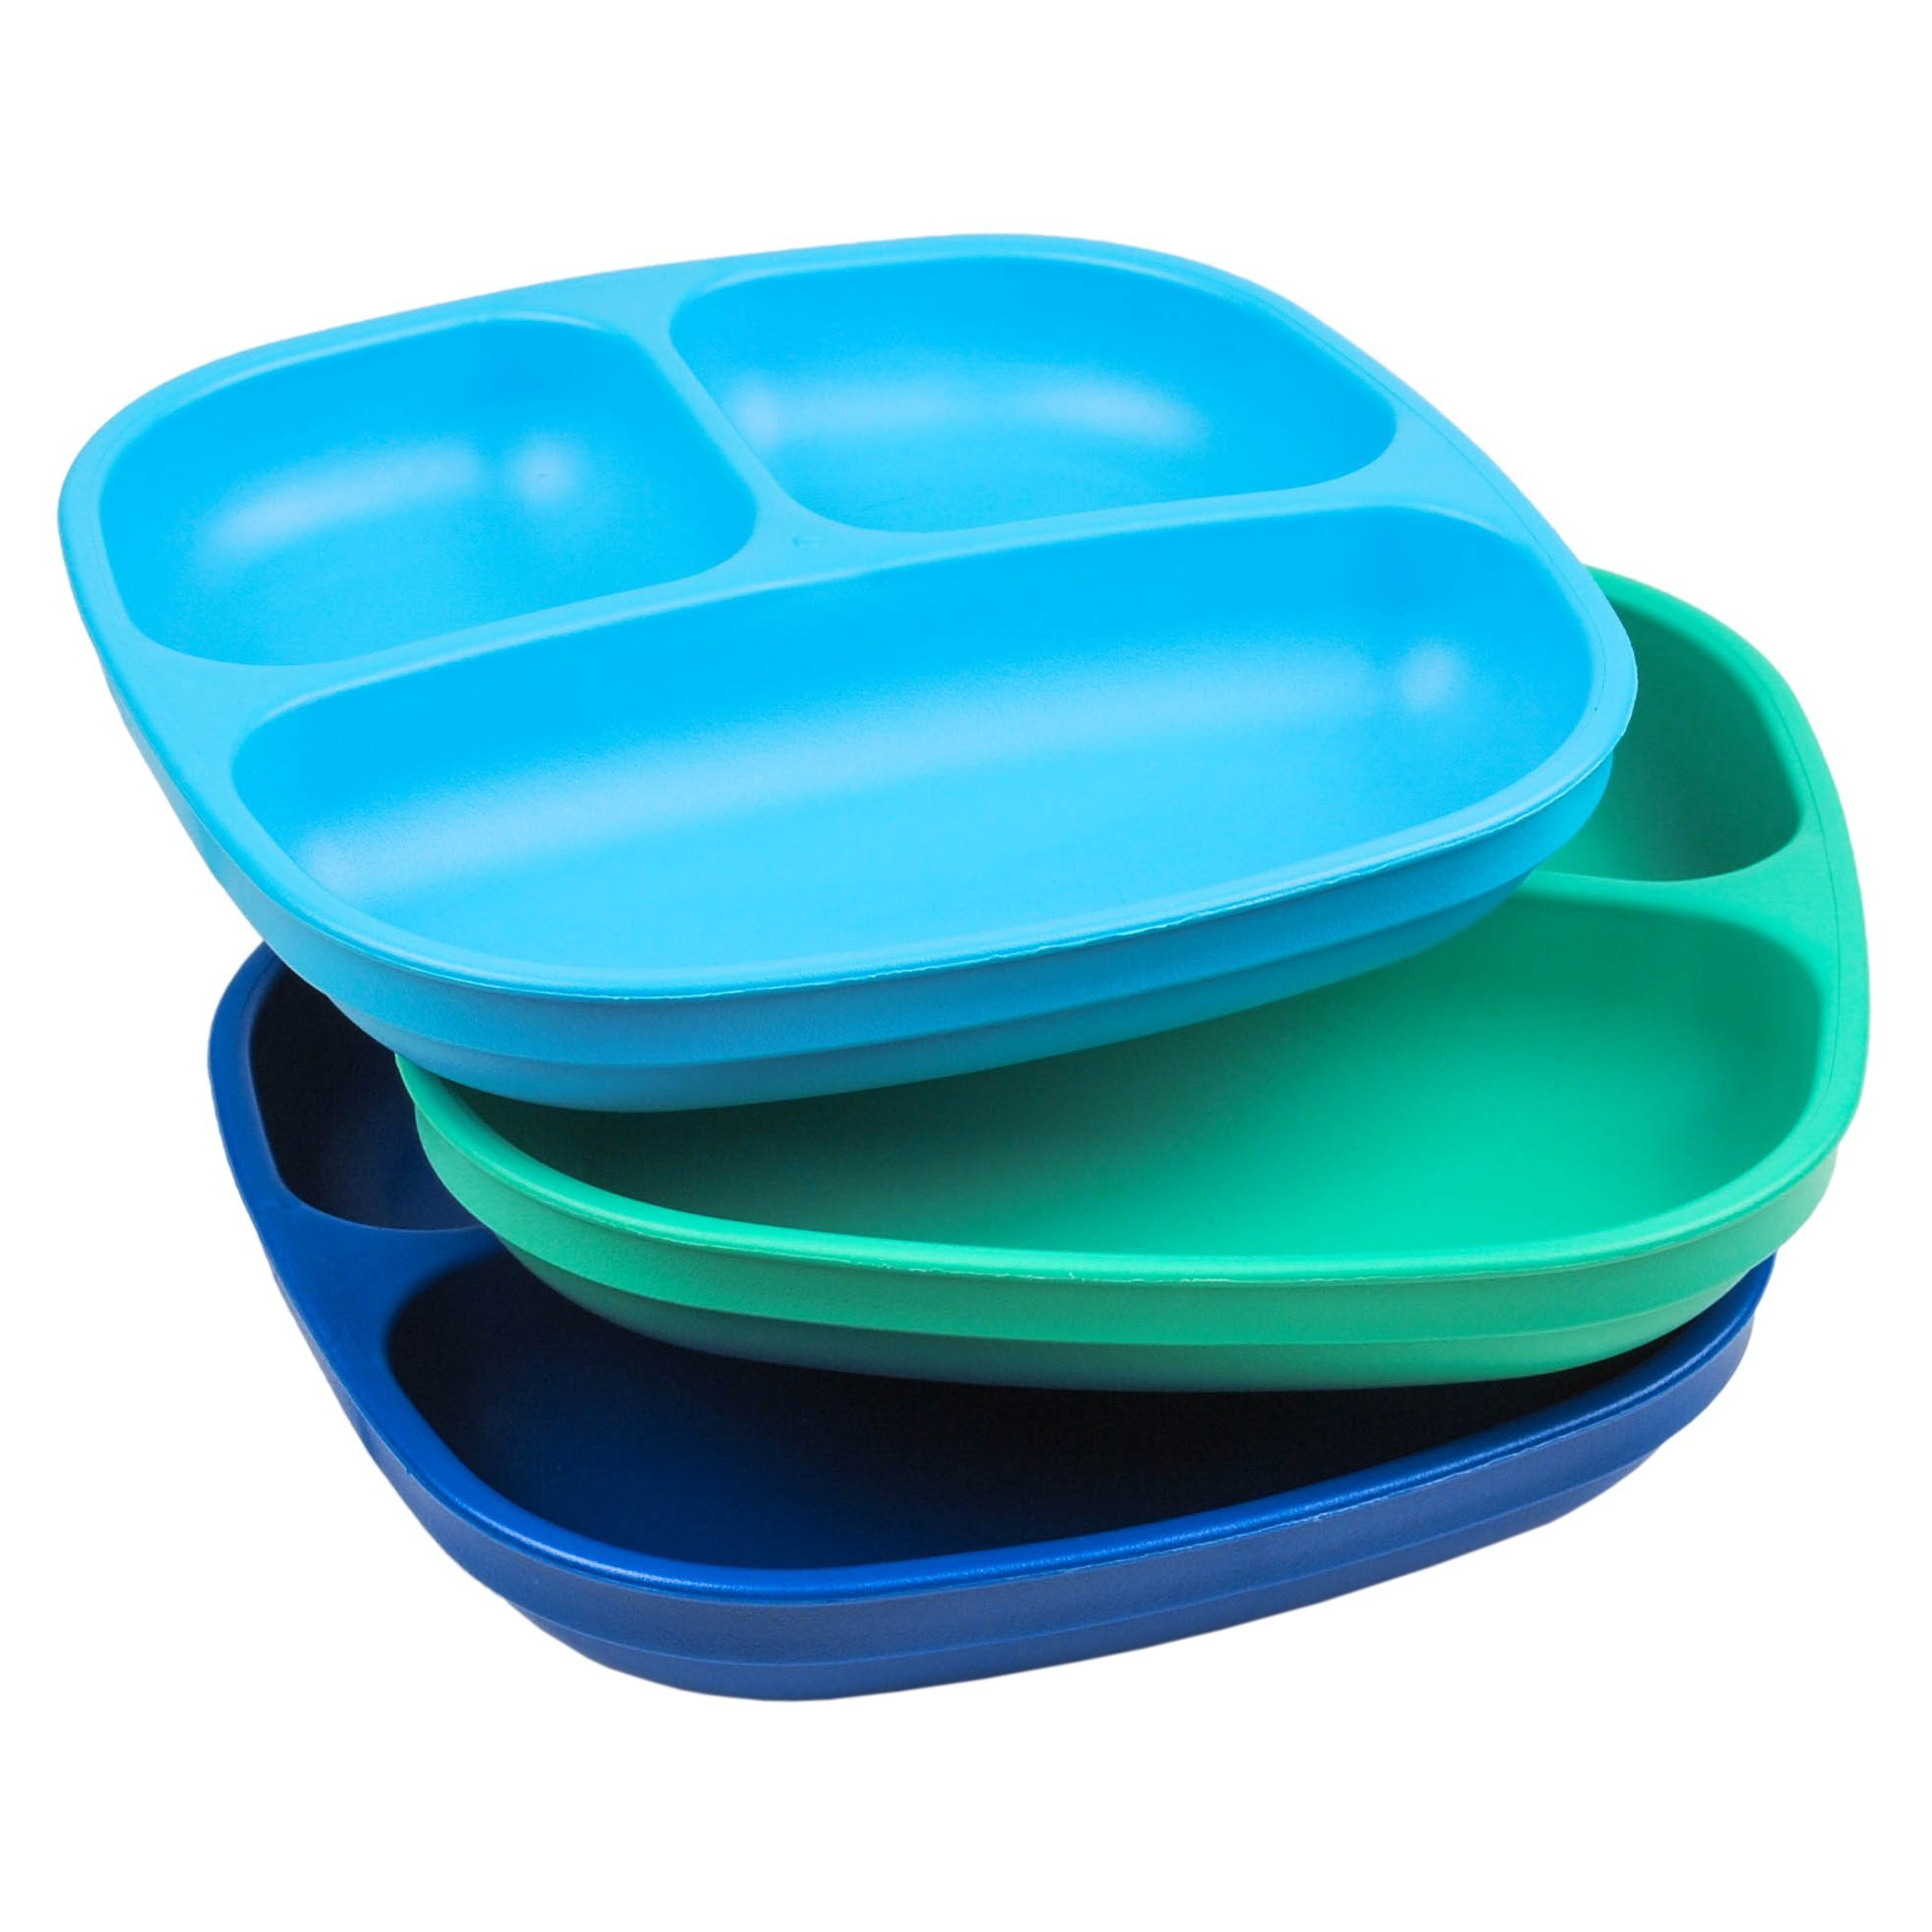 Re-Play Made in USA 3pk - 7.37'' Divided Plates with Deep Sides for Baby, Toddler, Child Mealtime - Sky Blue, Aqua & Navy Blue | Eco Friendly Heavyweight Recycled HDPE are Virtually Indestructible! by Re-Play